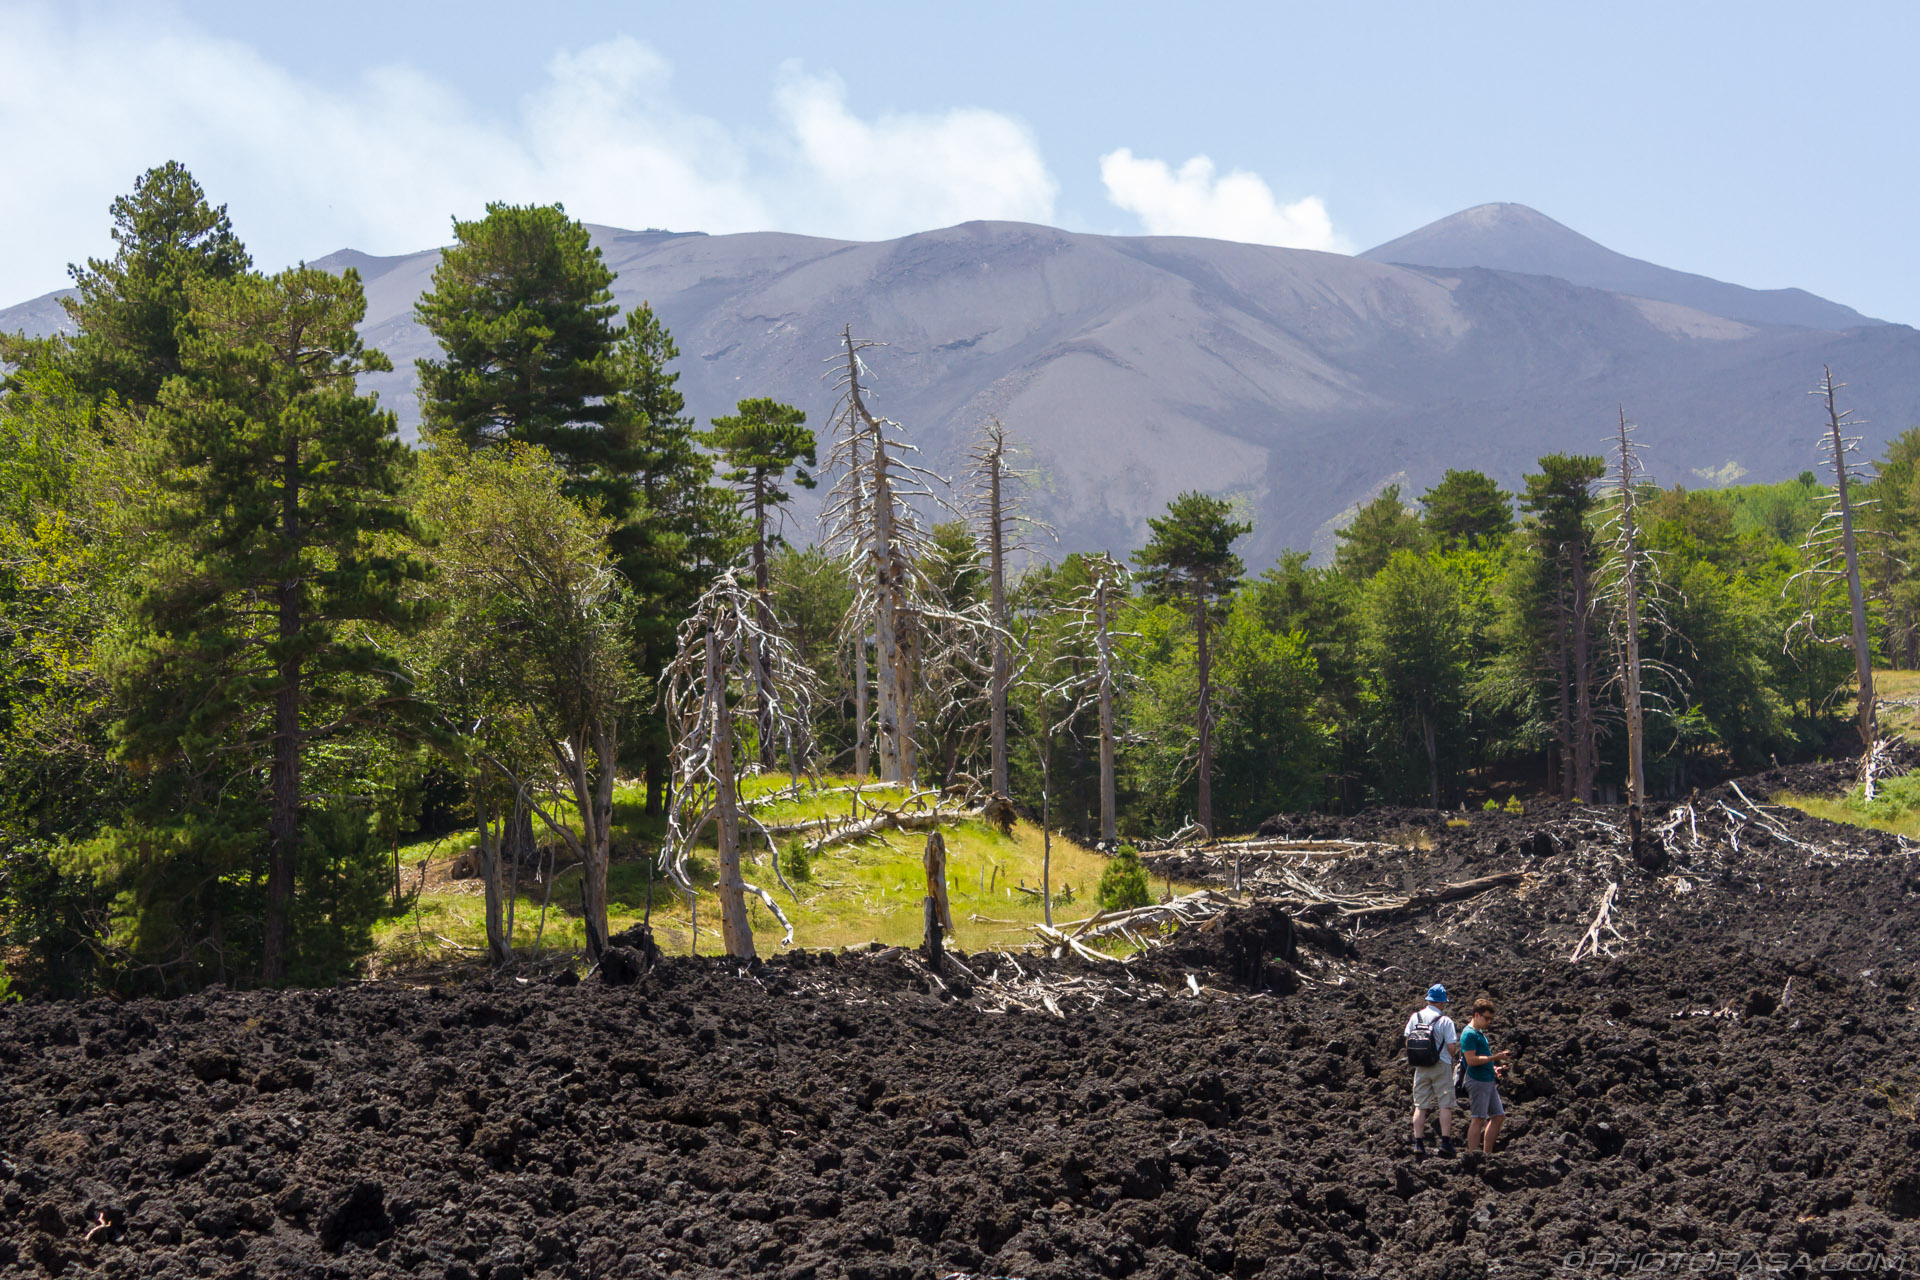 http://photorasa.com/mount-etna/lava-rock-and-petrified-trees/